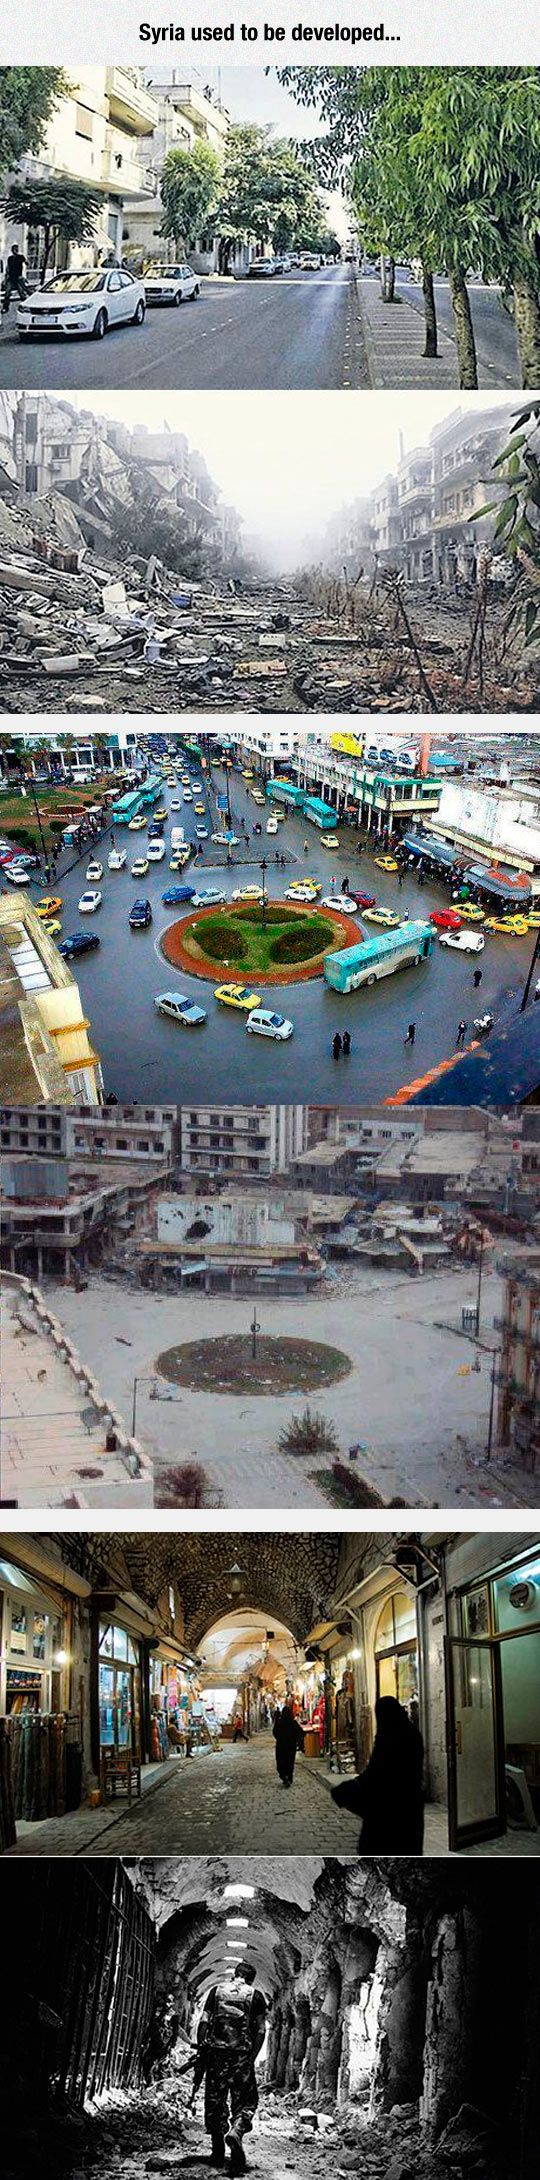 Syria Was A Beautiful Country, and then the people of the 'peaceful religion' took over....